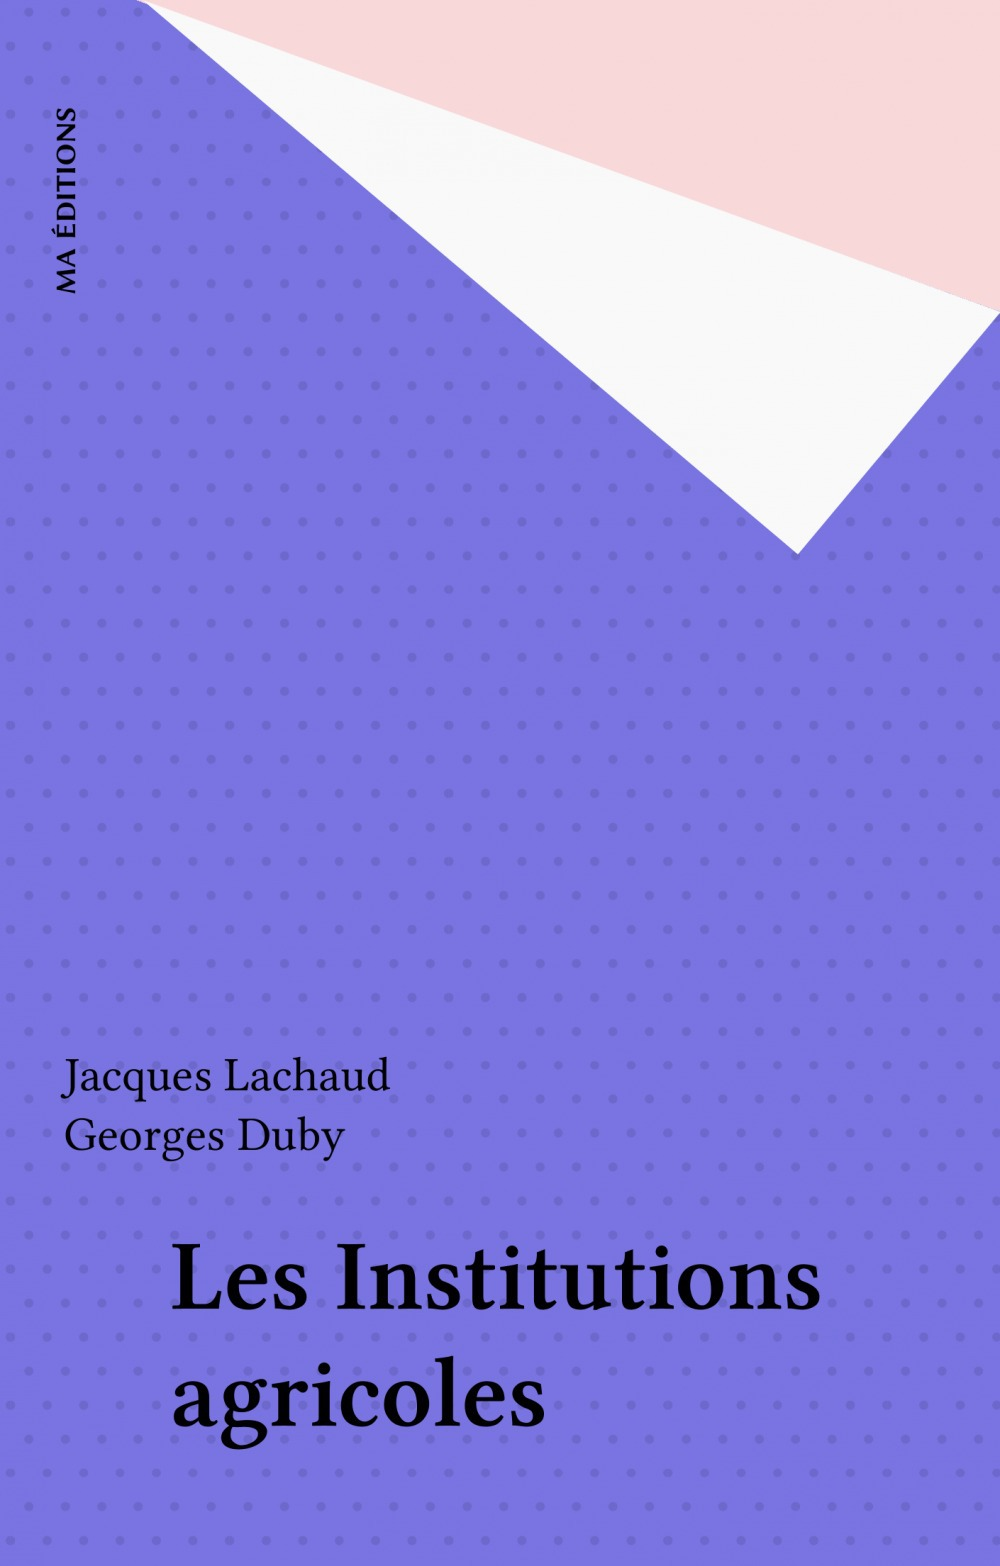 Les Institutions agricoles